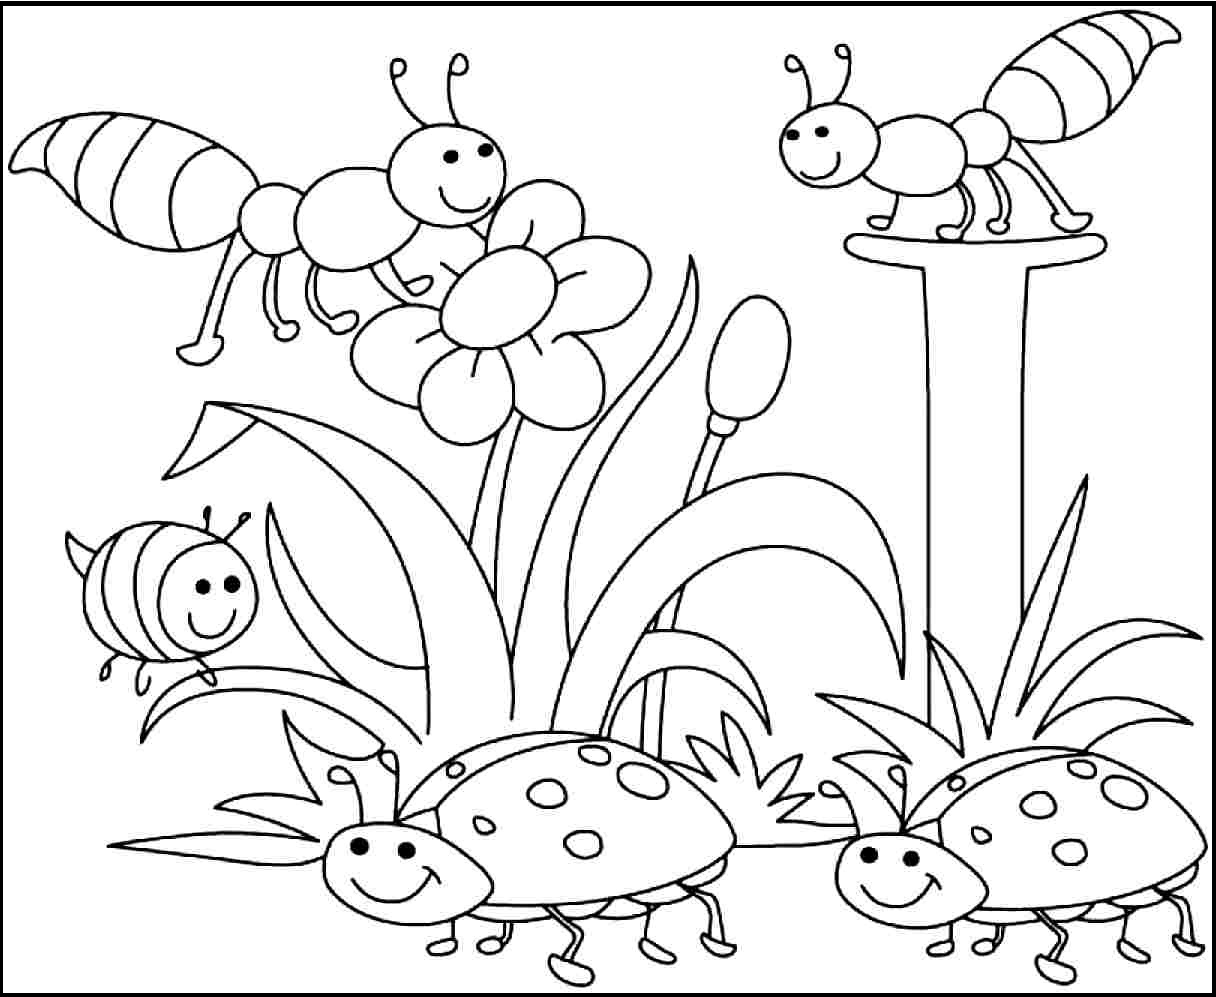 1216x997 Kids Coloring Coloring Pages Kids Coloring Pages Pdf Kids Coloring